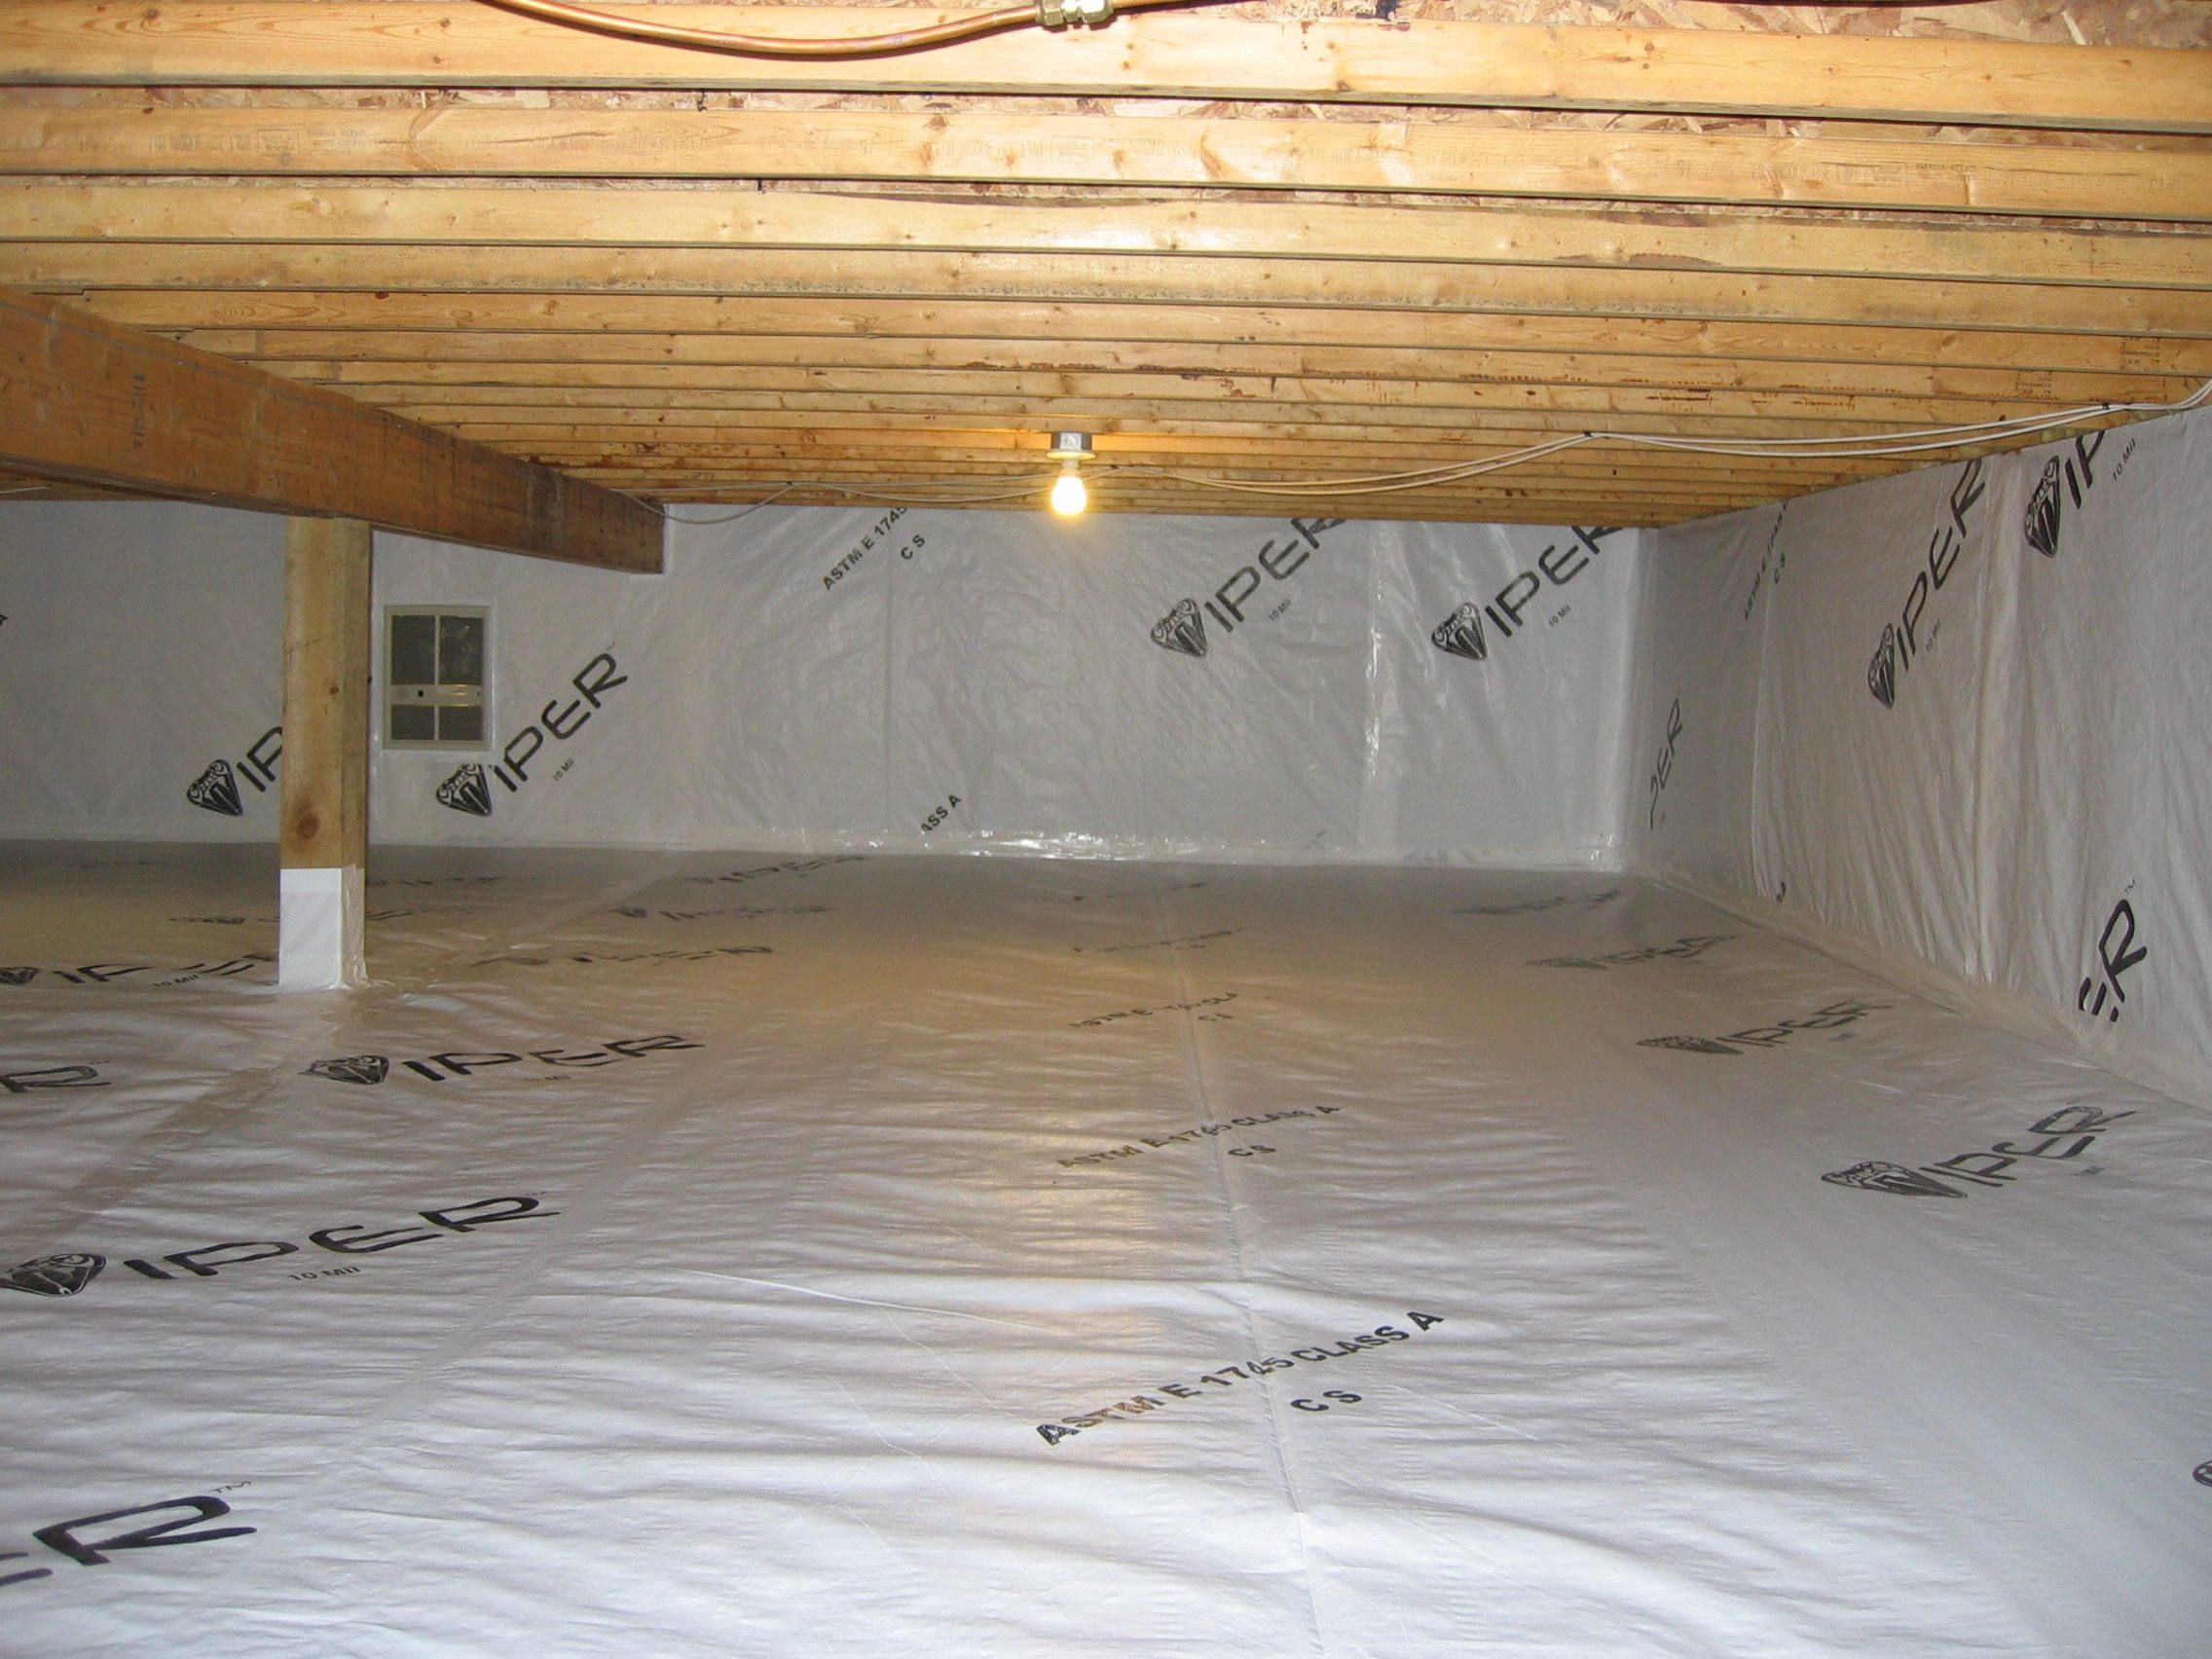 Viper cs is a vapor barrier designed specifically for for How to build a crawl space foundation for a house